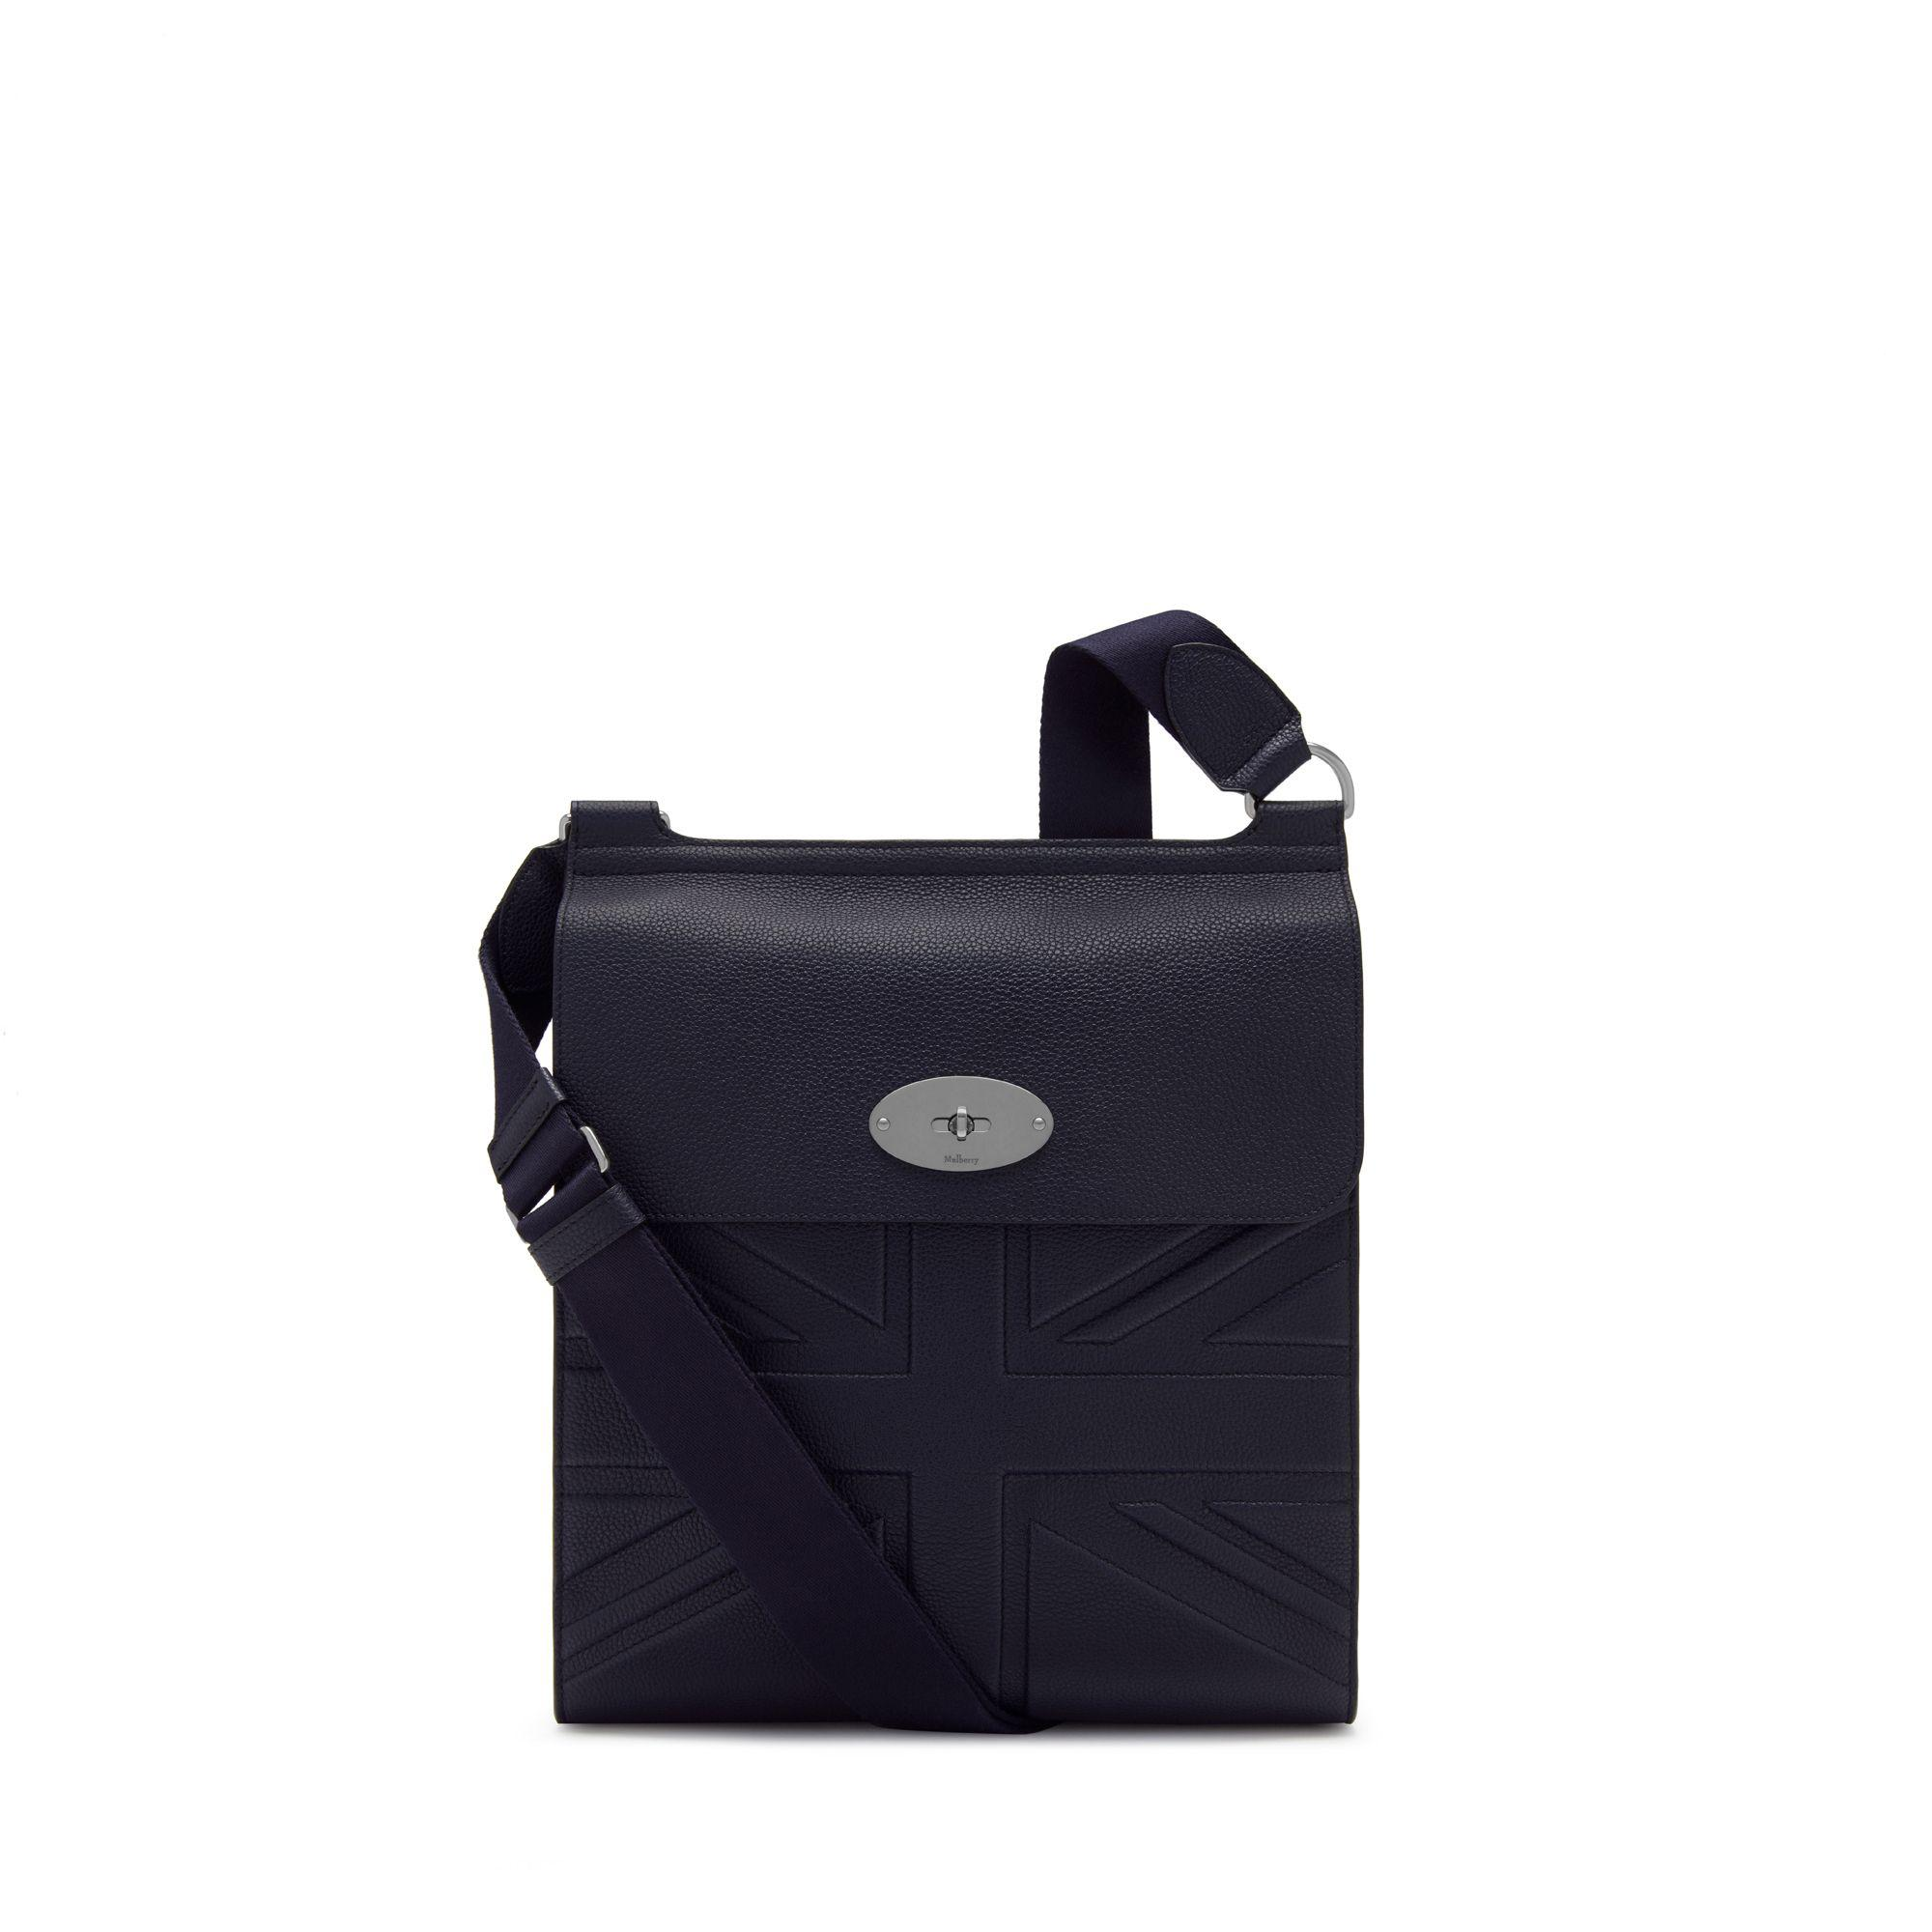 25042968a6f Mulberry New Antony Messenger In Midnight Small Classic Grain in ...